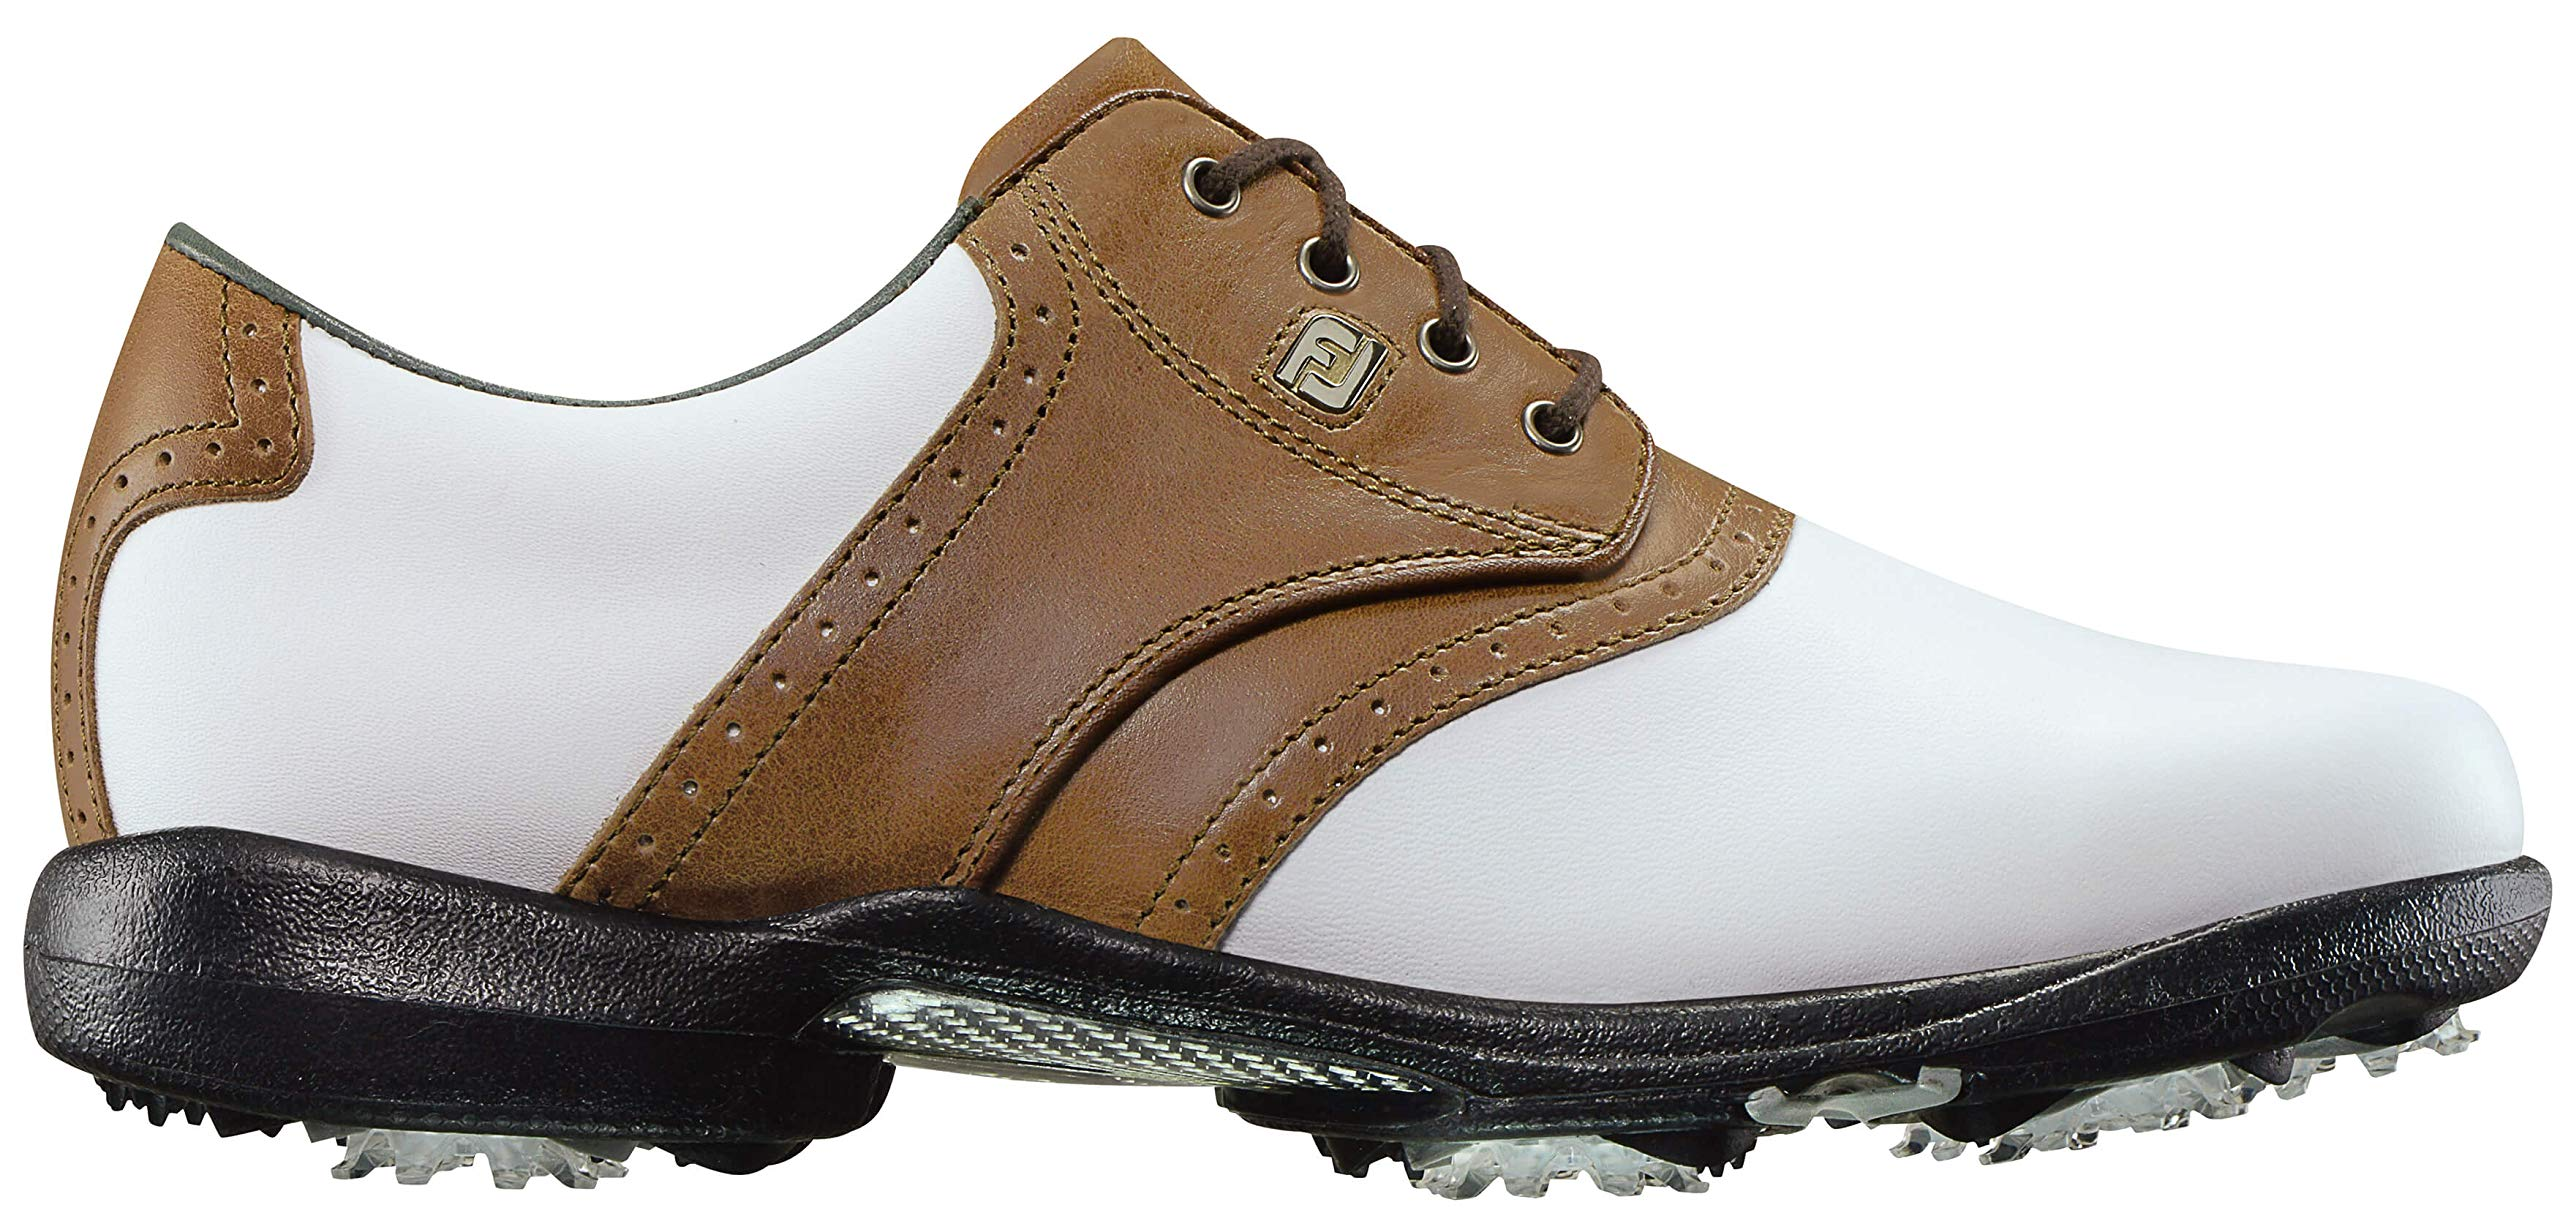 FootJoy Women's DryJoys Golf Shoes White 8 N Luggage Brown, US by FootJoy